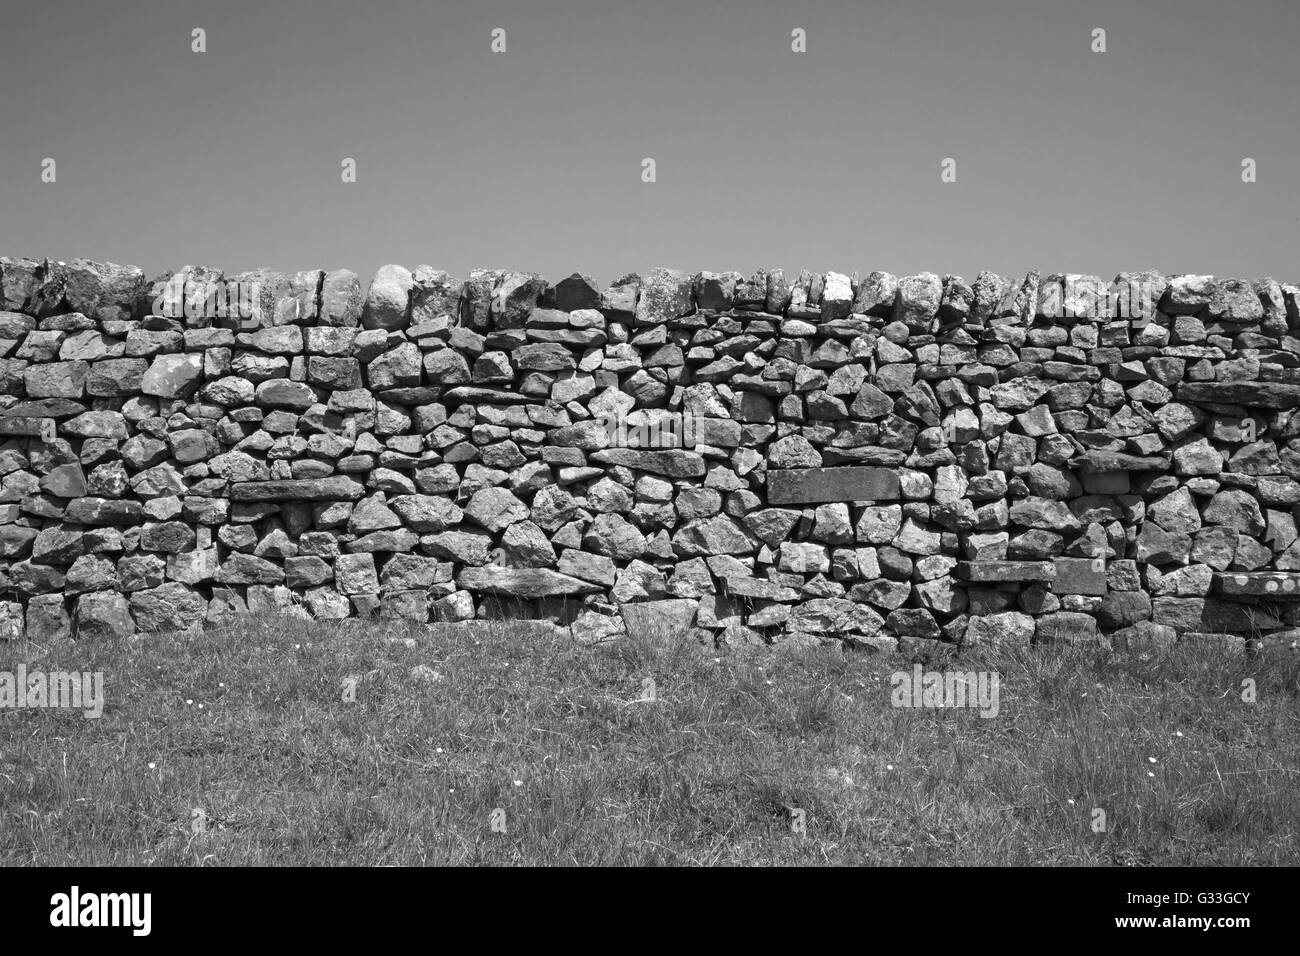 Dry stone wall. Yorkshire Dales, England, UK - Stock Image